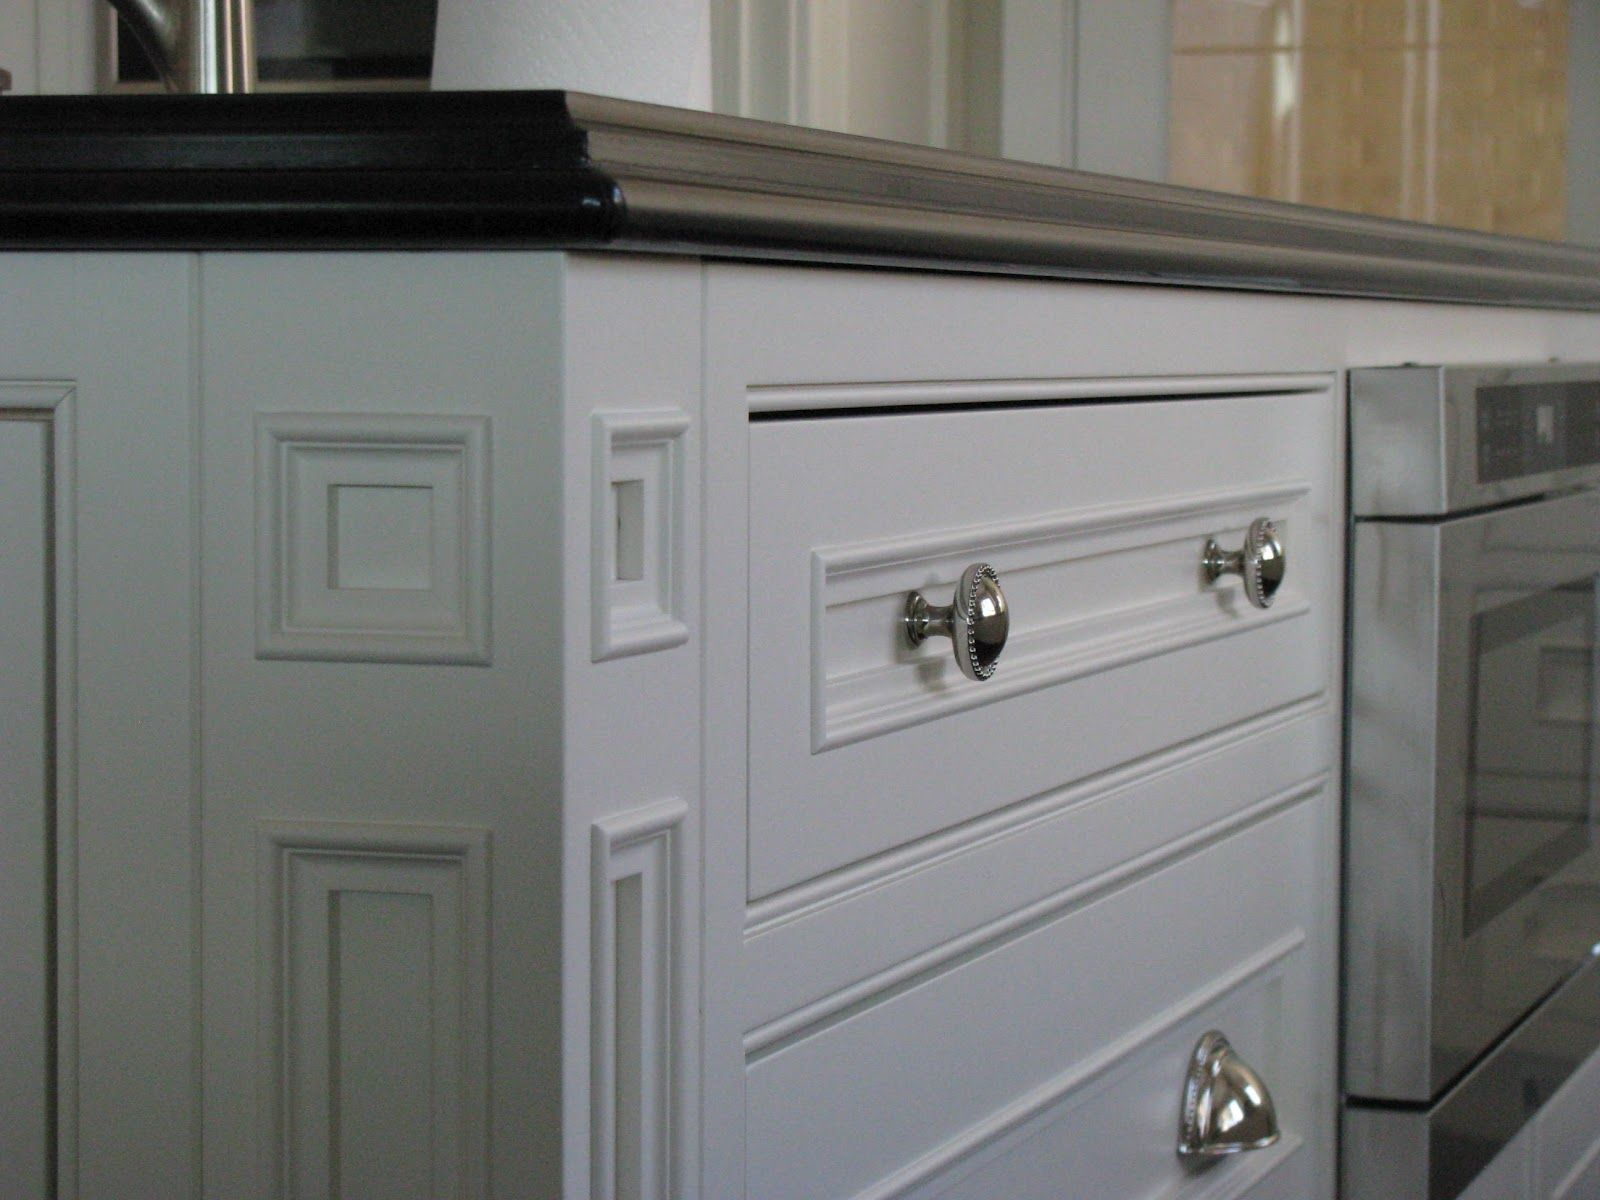 Simply Beautiful Kitchens The Blog Beaded Inset Cabinets Part Two Inset Cabinets Custom Bathroom Cabinets Frameless Kitchen Cabinets